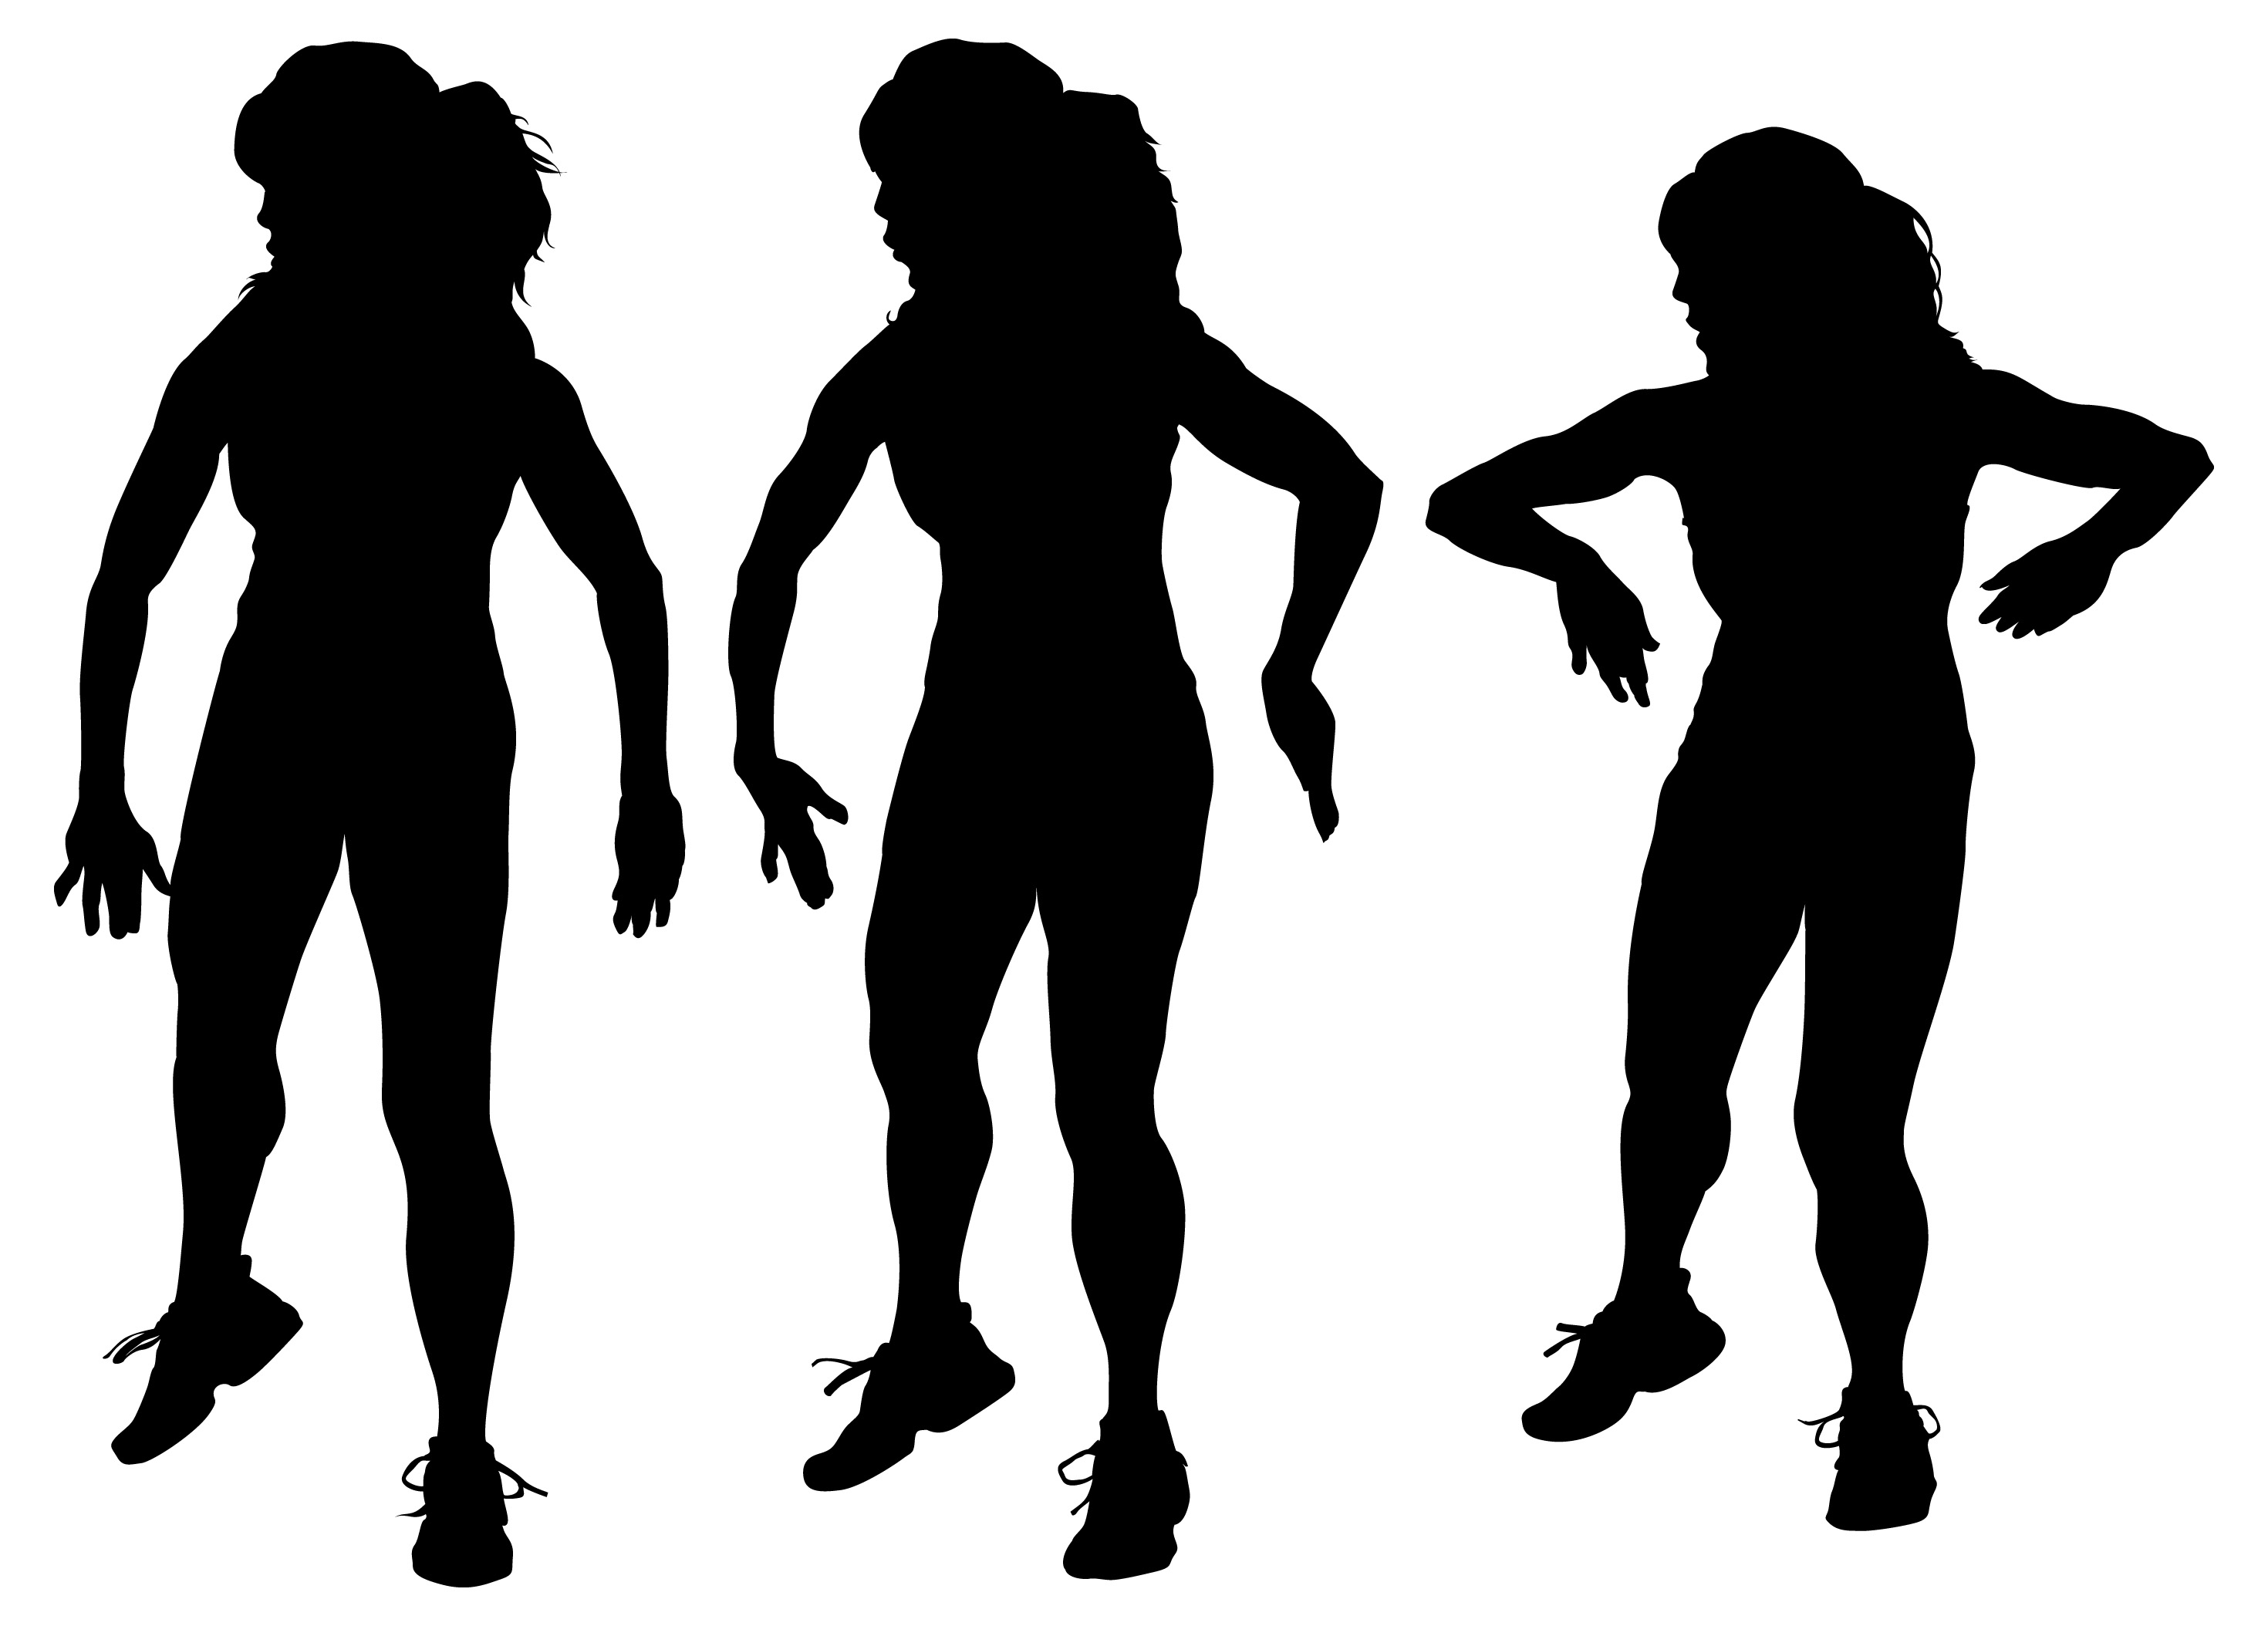 zumba clip art free - photo #38